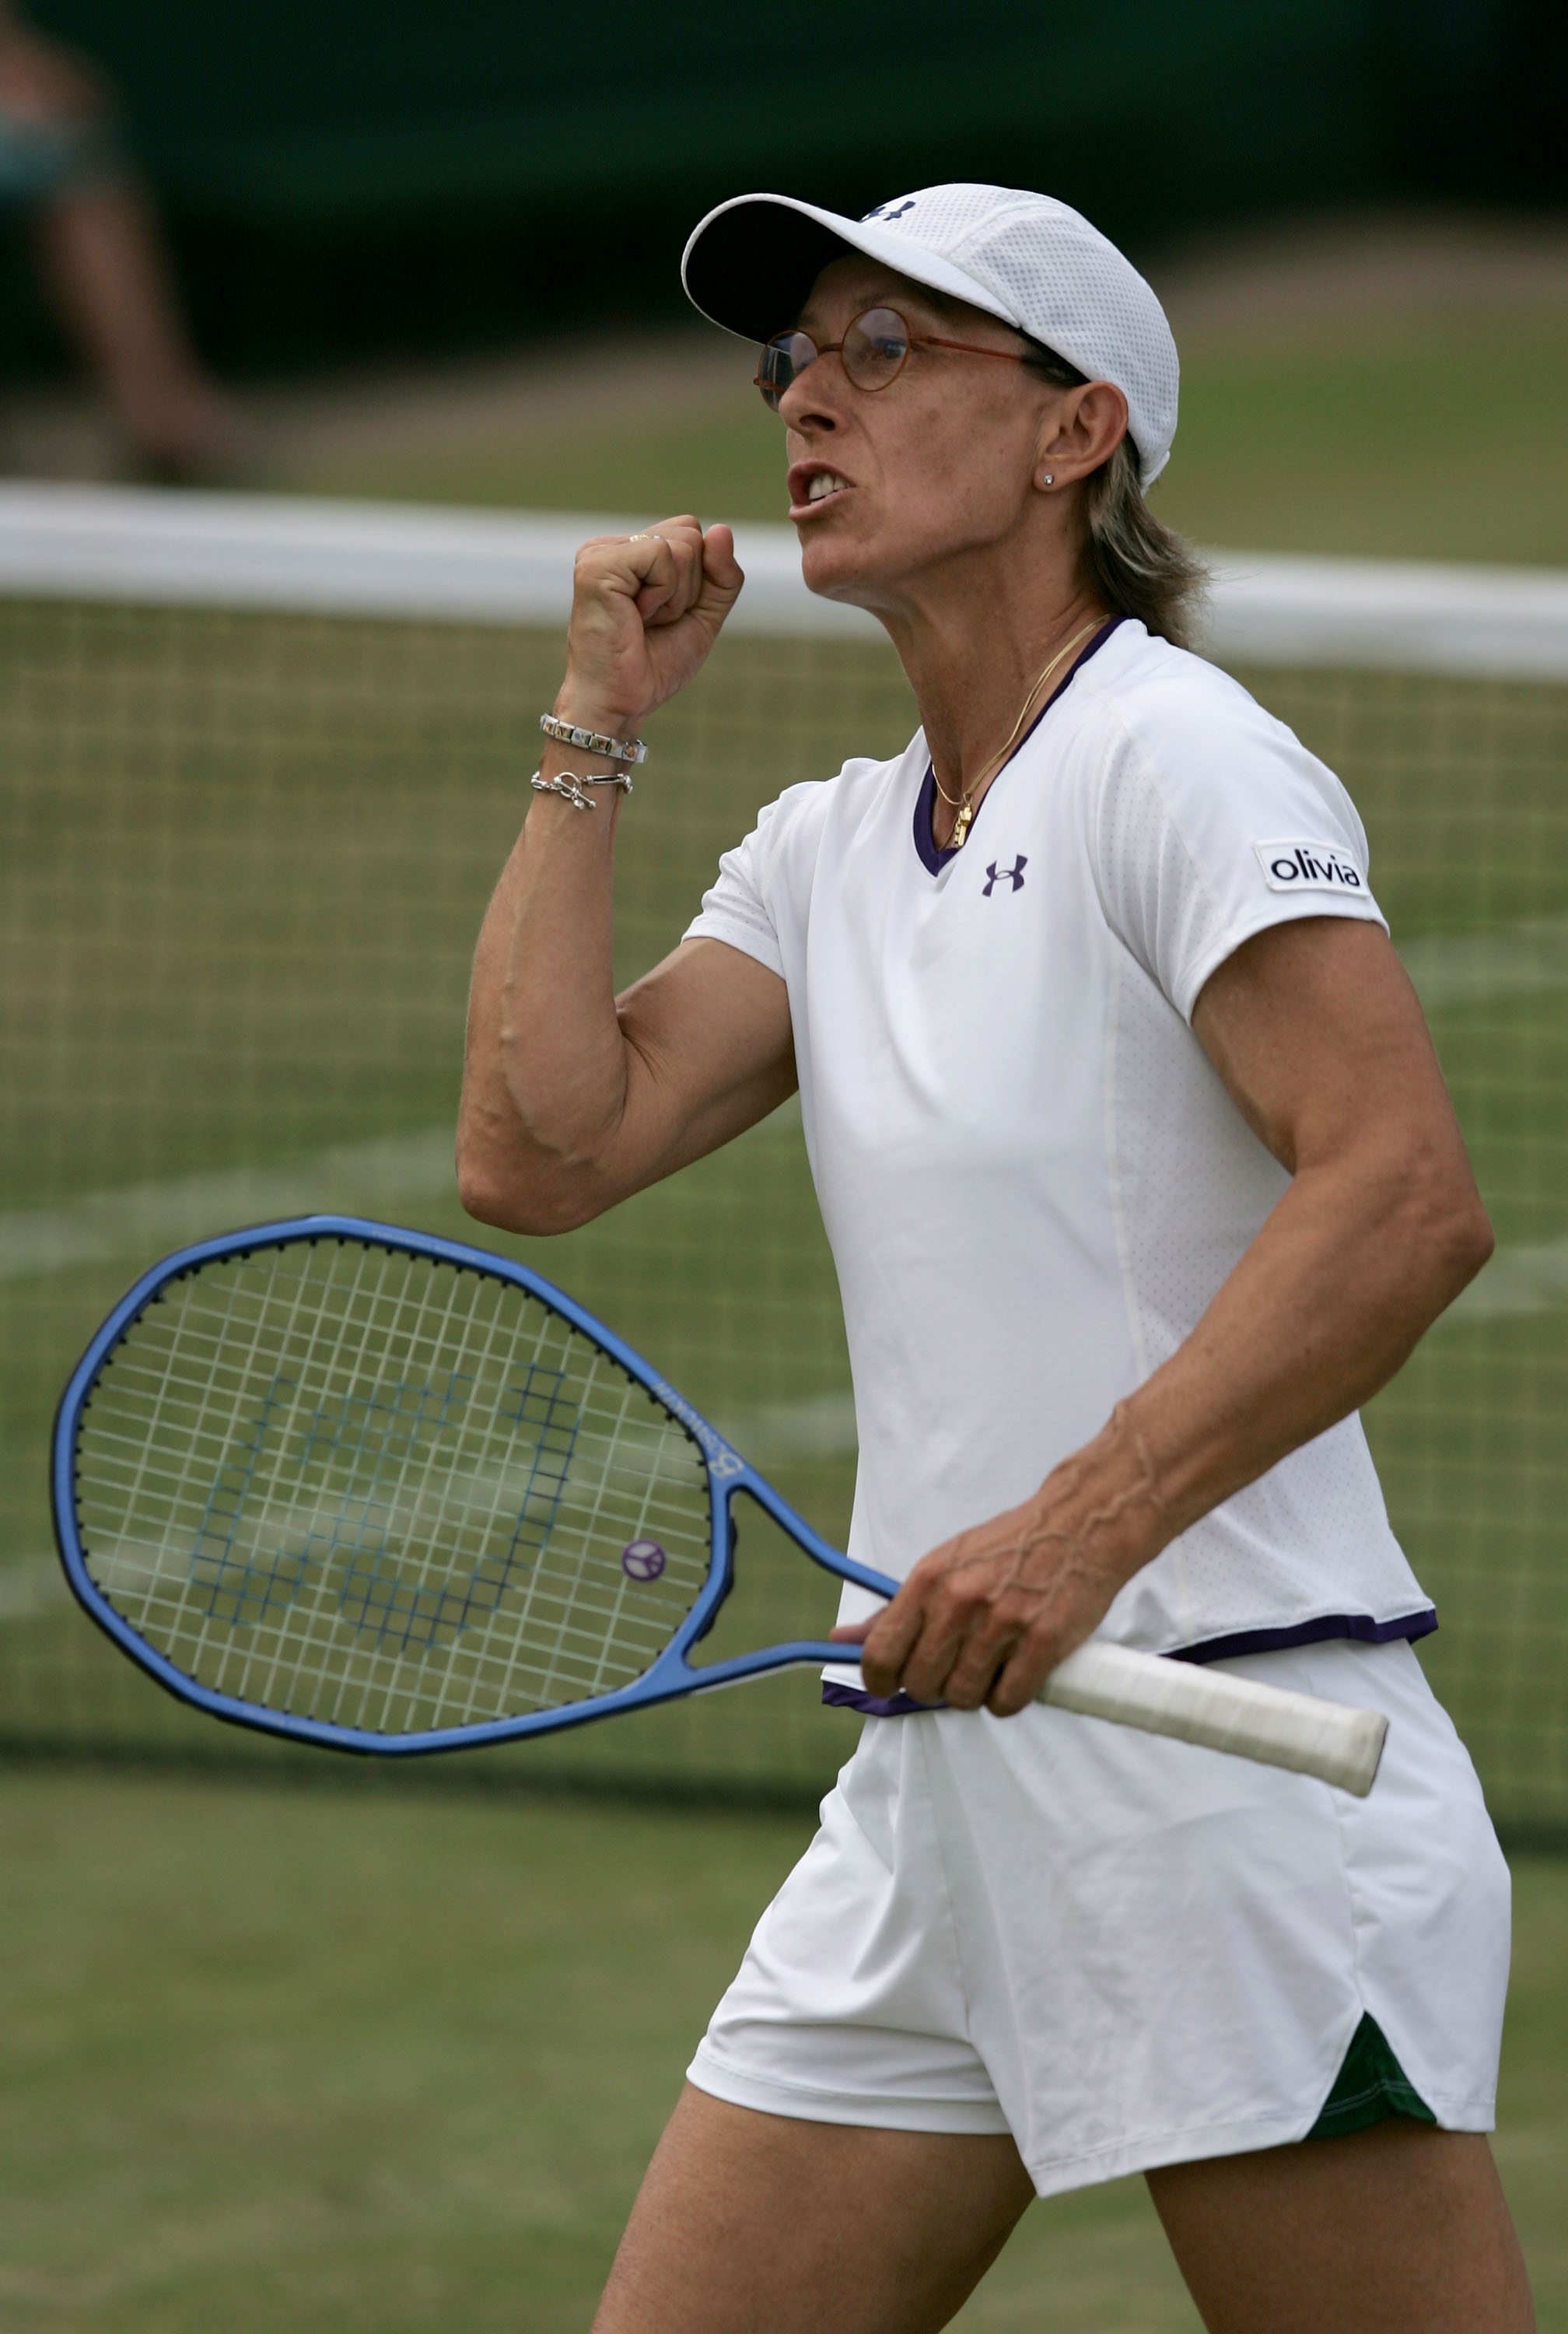 LONDON - JUNE 29:  Martina Navratilova of the USA celebrates winning a game during her doubles match with Anna-Lena Groenefeld of Germany against Vera Douchevina of Russia and Shahar Peer of Israel in the Ladies Doubles during the ninth day of the Wimbled